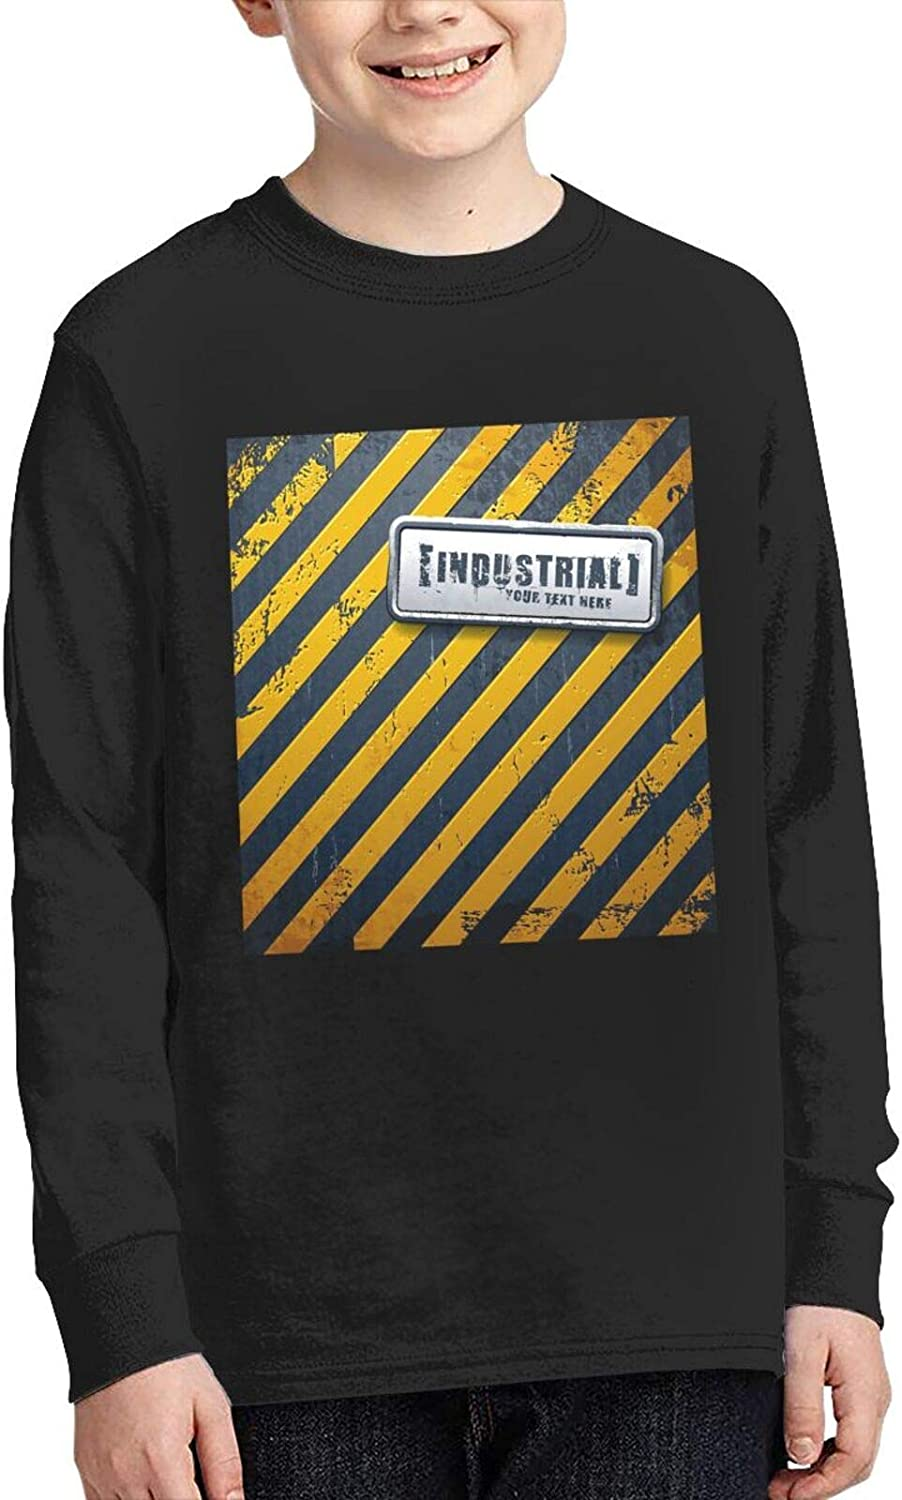 Max 65% OFF TZT Industrial Background Max 78% OFF Sweater Childr and Comfortable Fashion